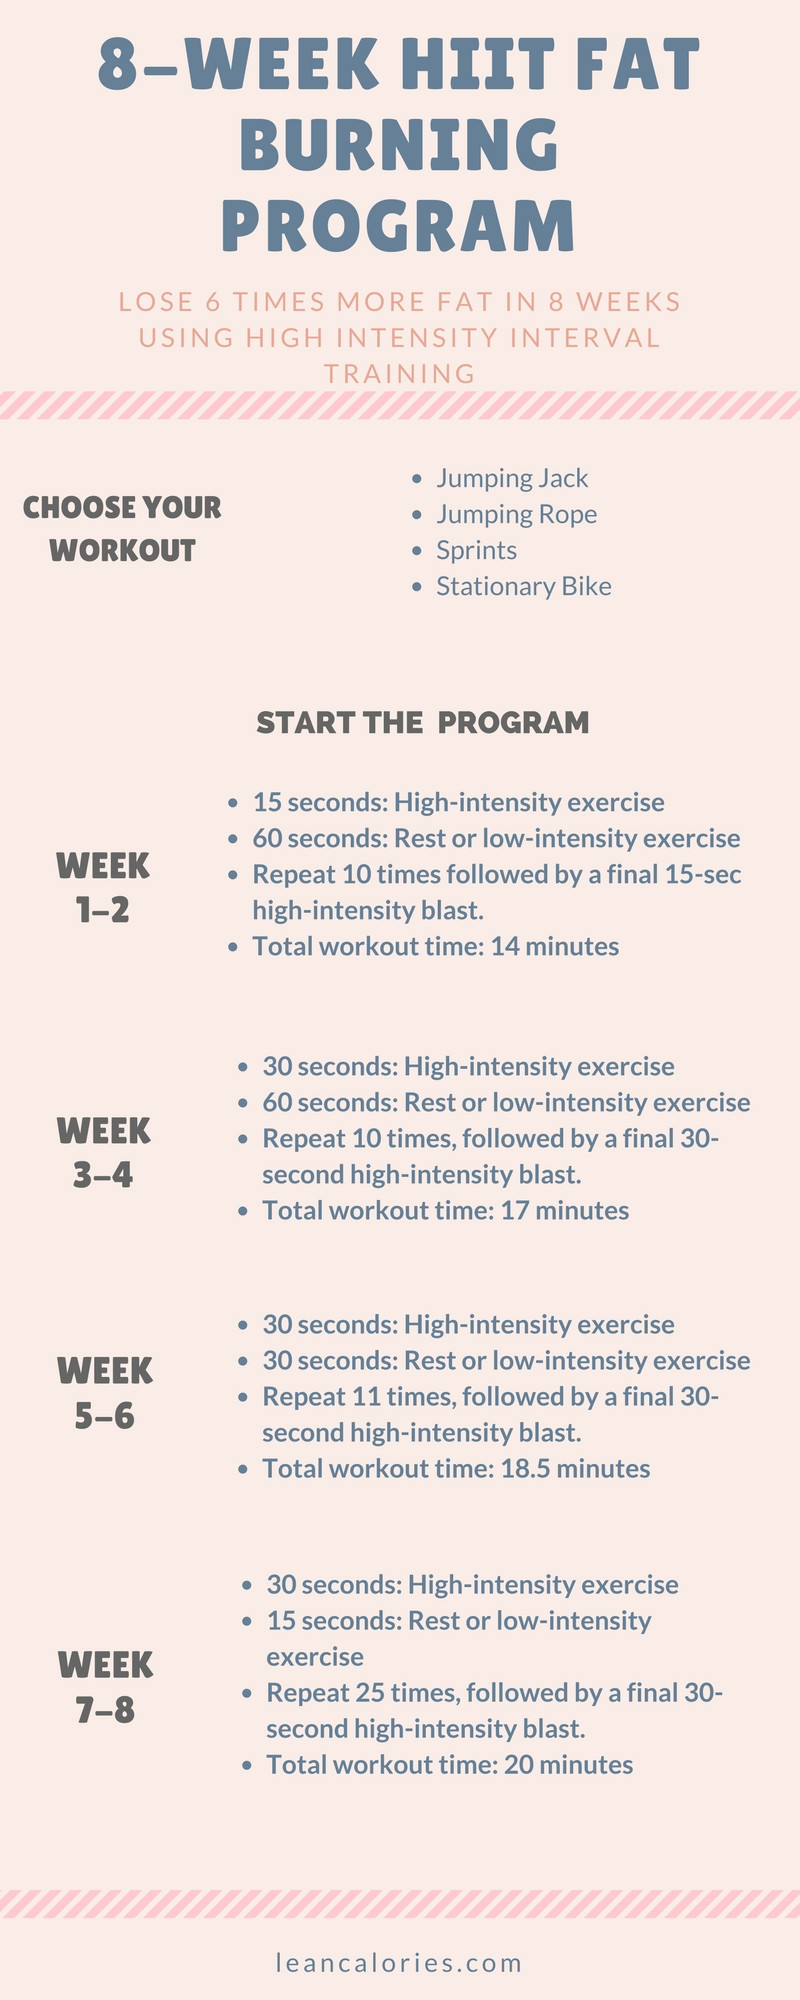 Hiit Fat Burning Workouts  World s Best Workout Plan Burns 6 Times More Fat In